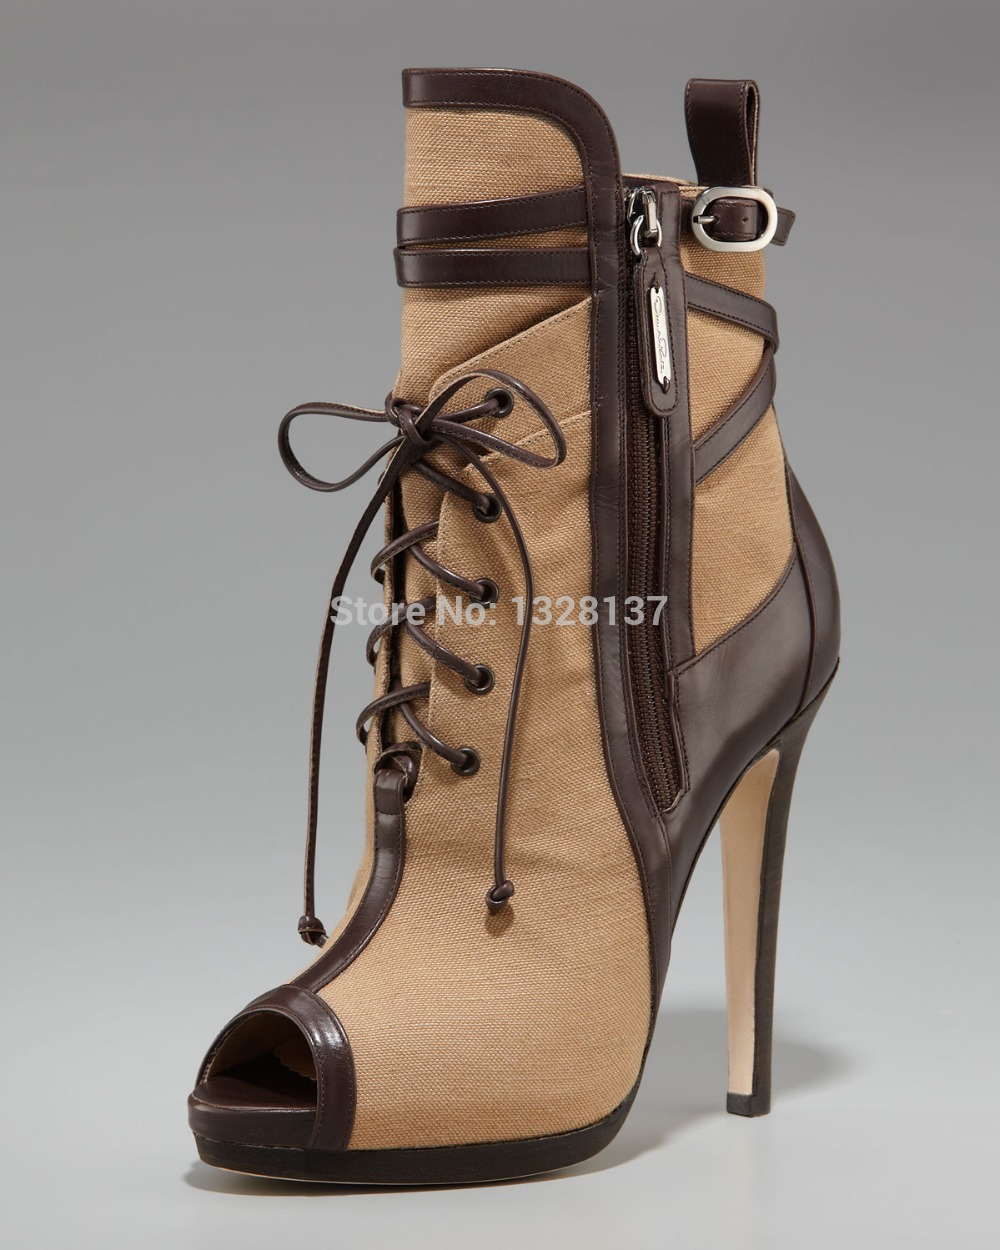 Fashion Canvas Thin Heels Brown Lace Up Platforms Rubber Zipper Peep Open Toe 2015 Brand Ankle Boots For Women botas femininas(China (Mainland))